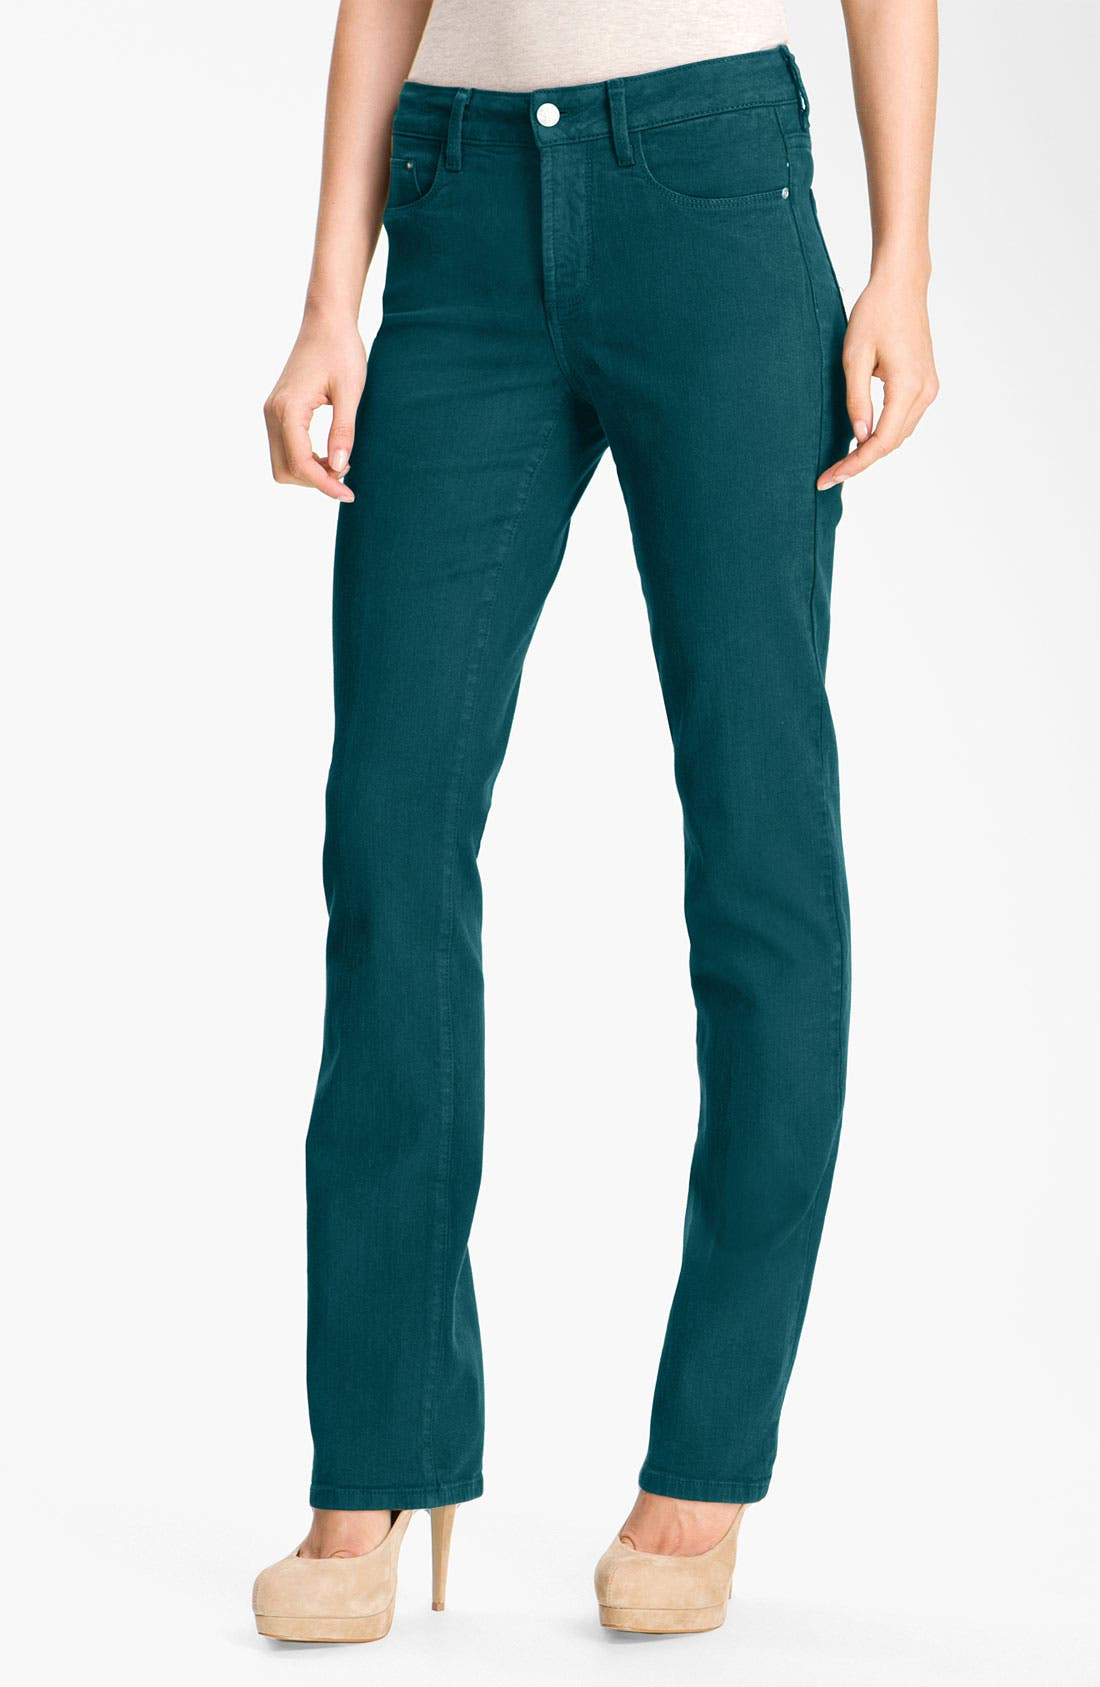 Main Image - NYDJ 'Marilyn' Colored Straight Leg Stretch Jeans